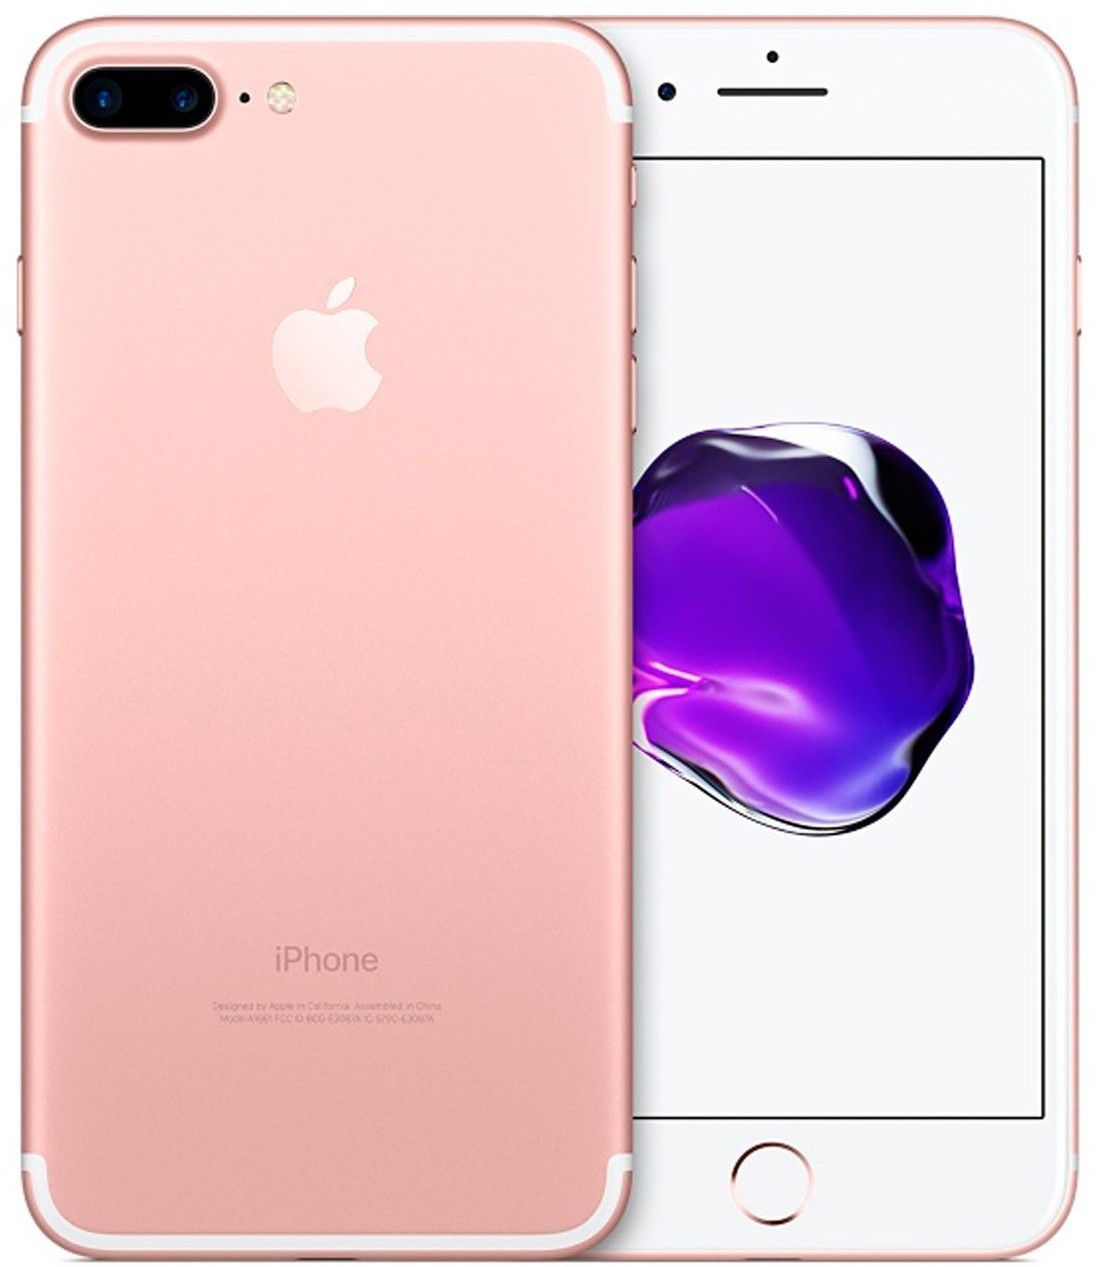 Buy Apple Iphone 7 Plus From 319 00 Today Best Deals On Idealo Co Uk